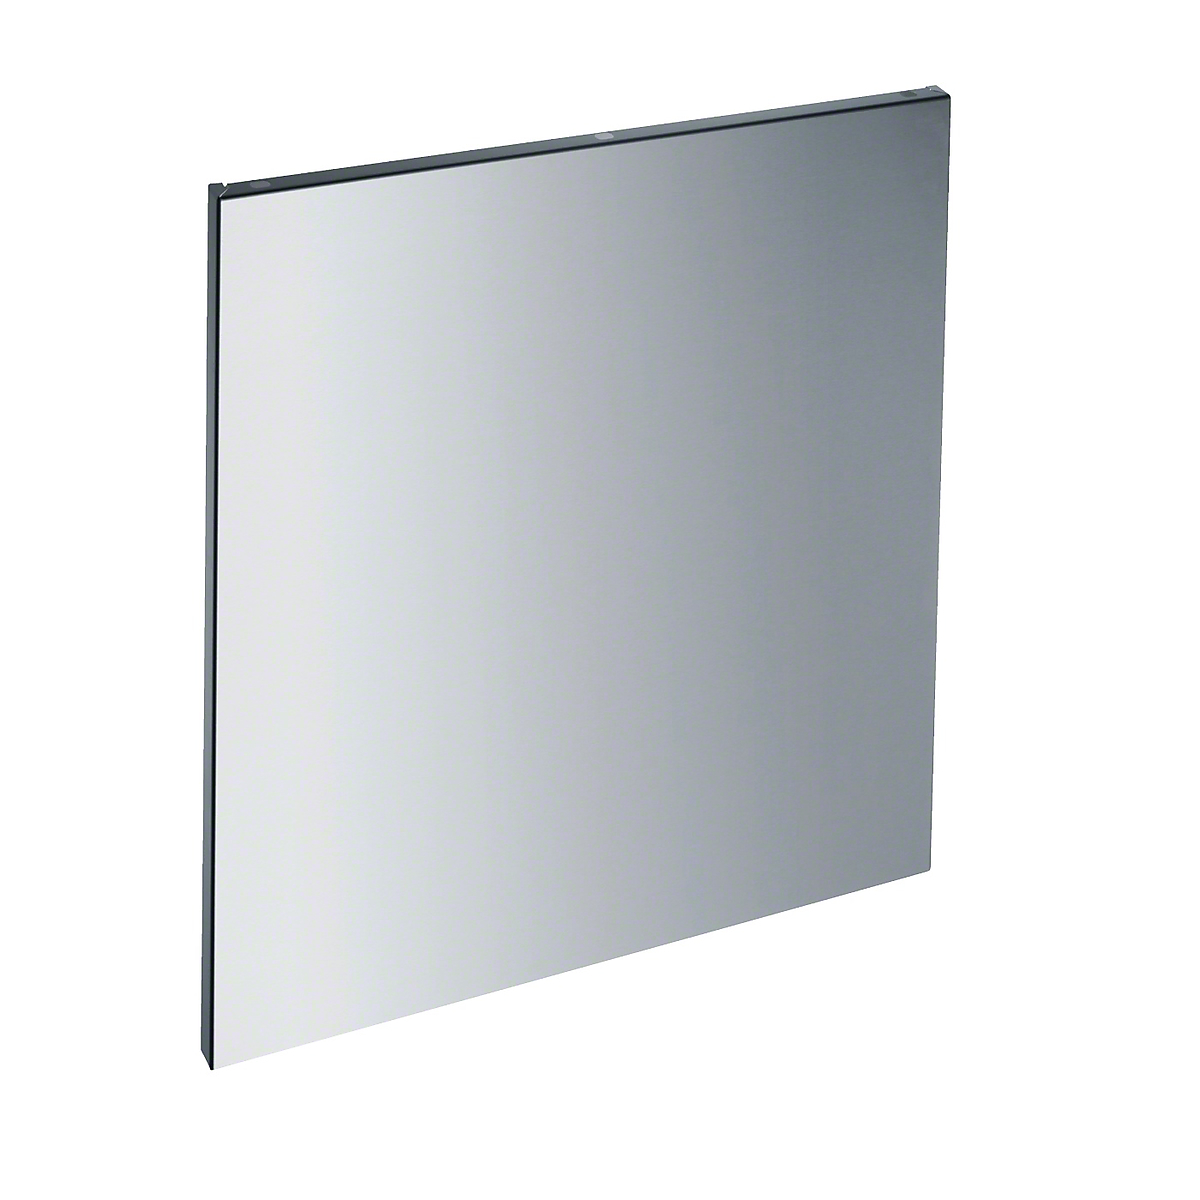 Int. front panel: W x H, 24 x 24 inwith Clean Touch Steel™ finish for integrated dishwashers.